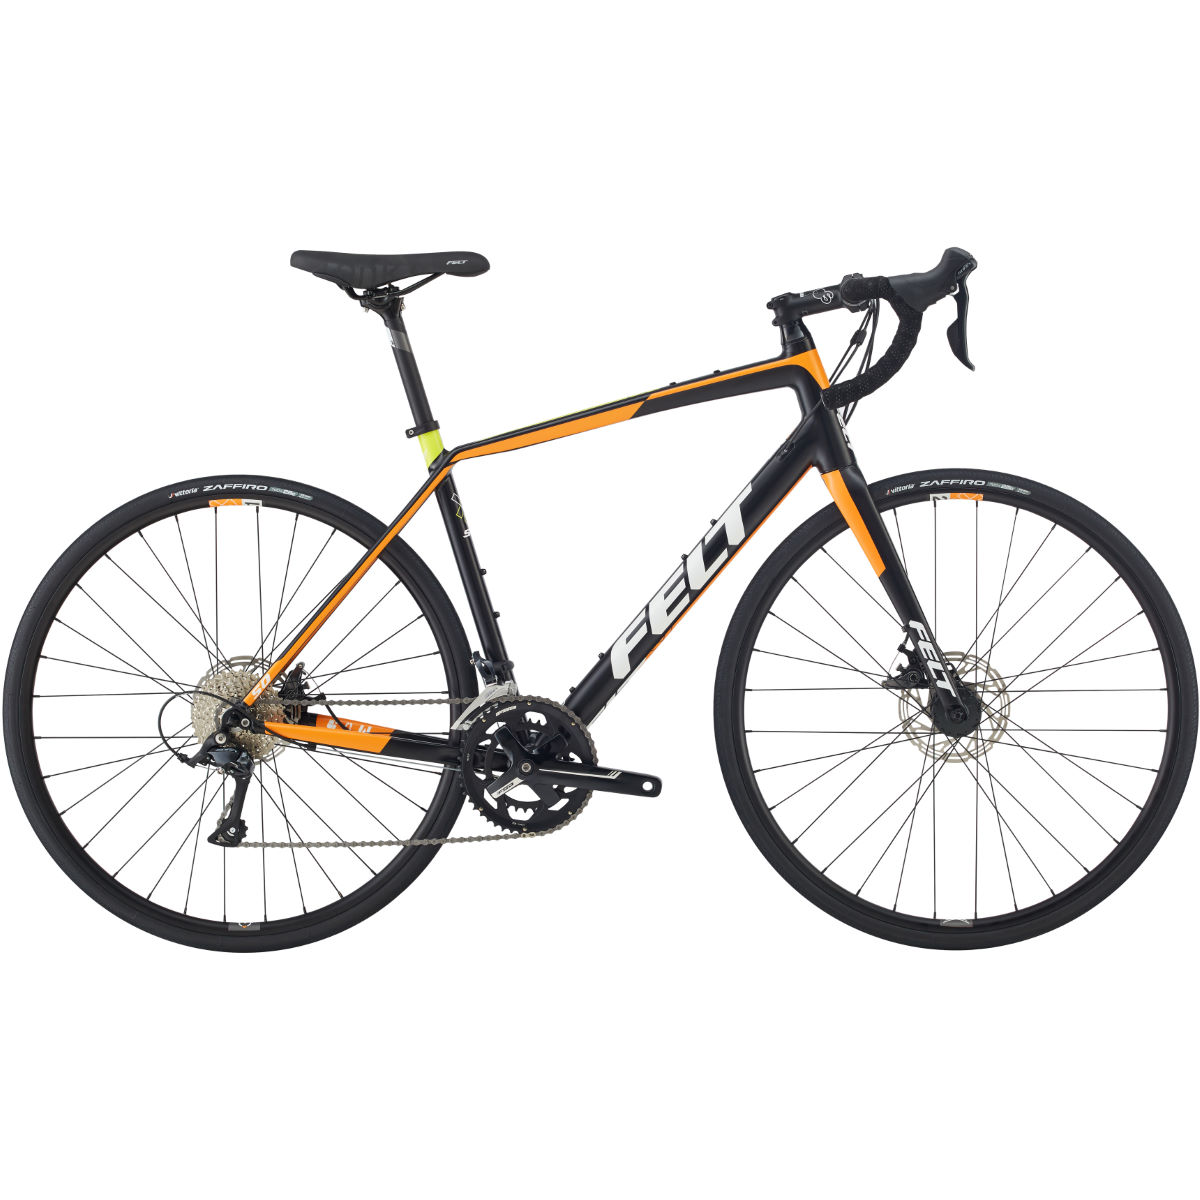 Vélo de route Felt VR50 (Sora, 2017) - 51cm Stock Bike Noir/Orange